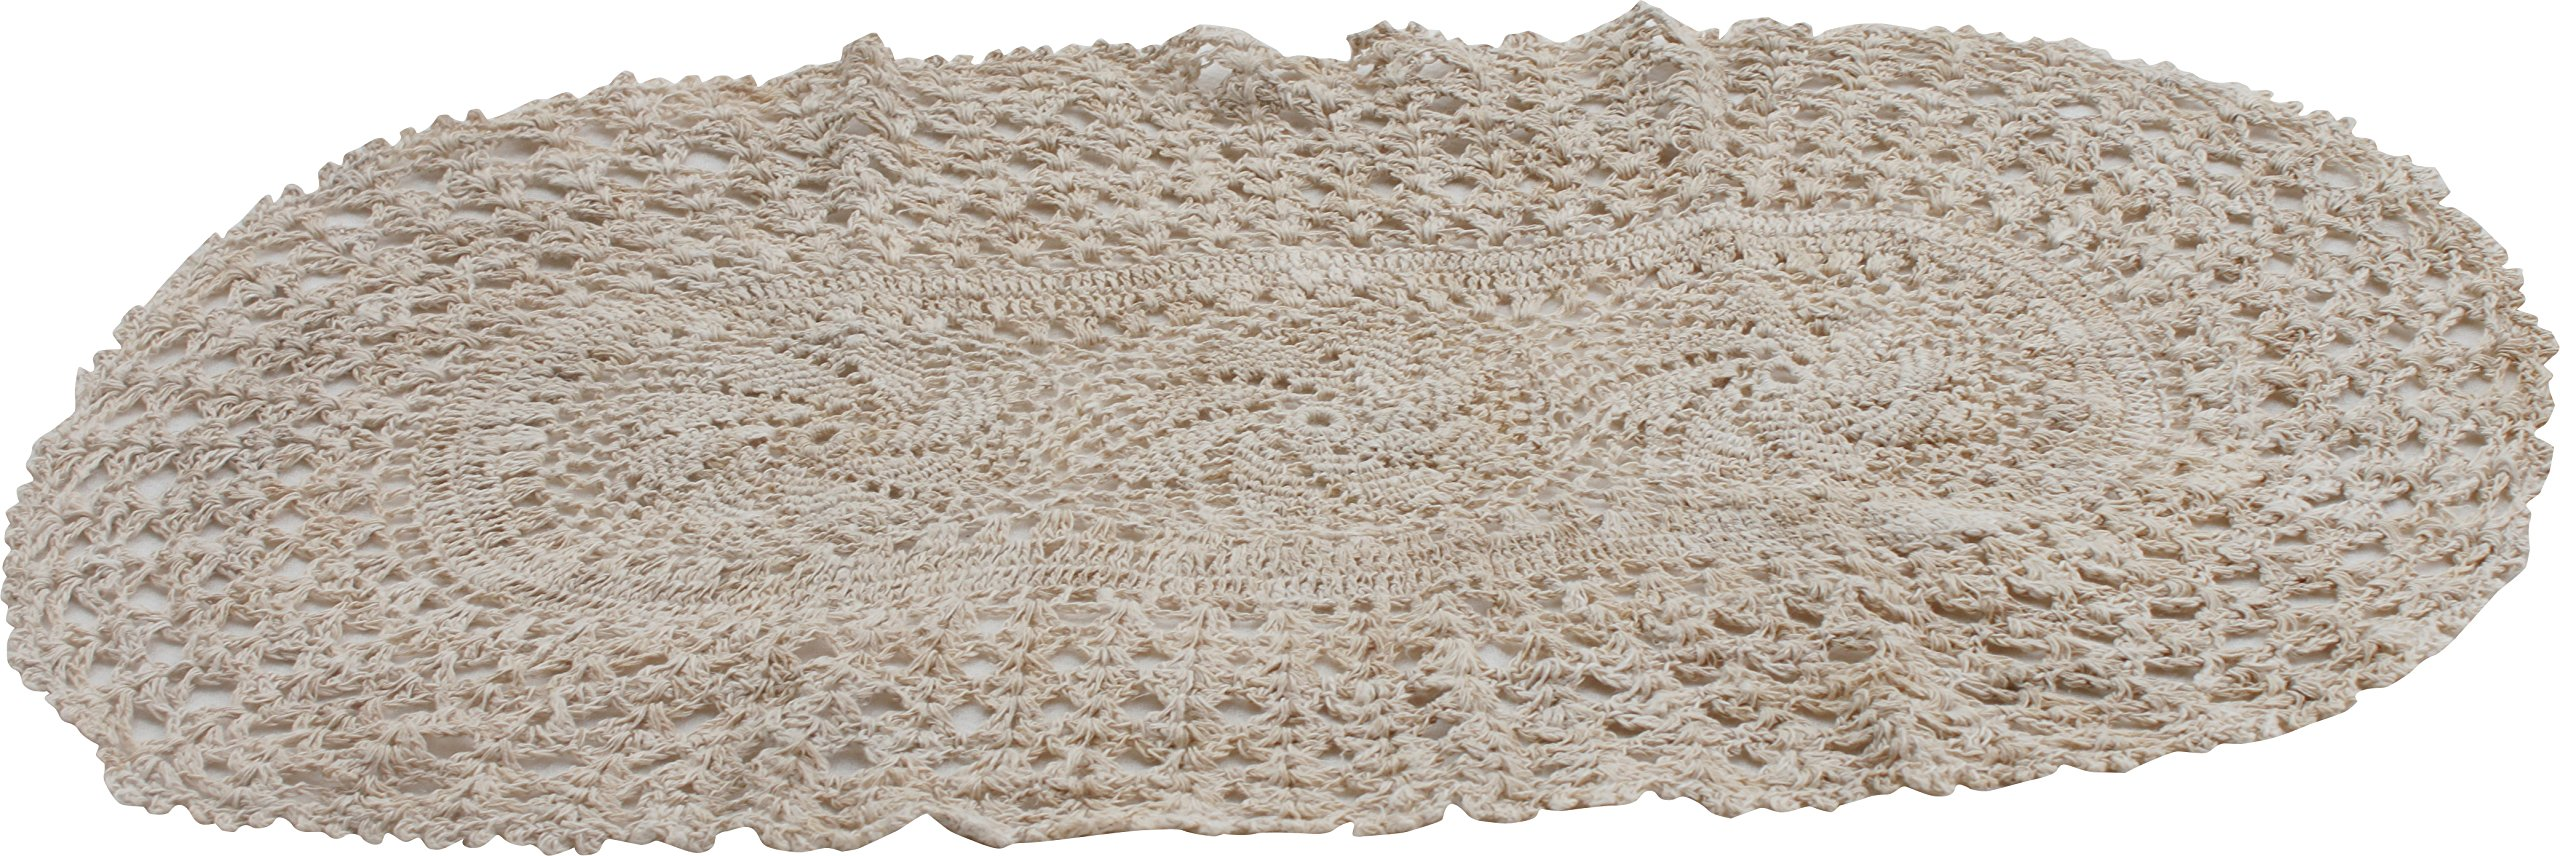 RaanPahMuang Swedish Table Placemat Crocheted from Raw Thai Hemp Thread 10x20'' by RaanPahMuang